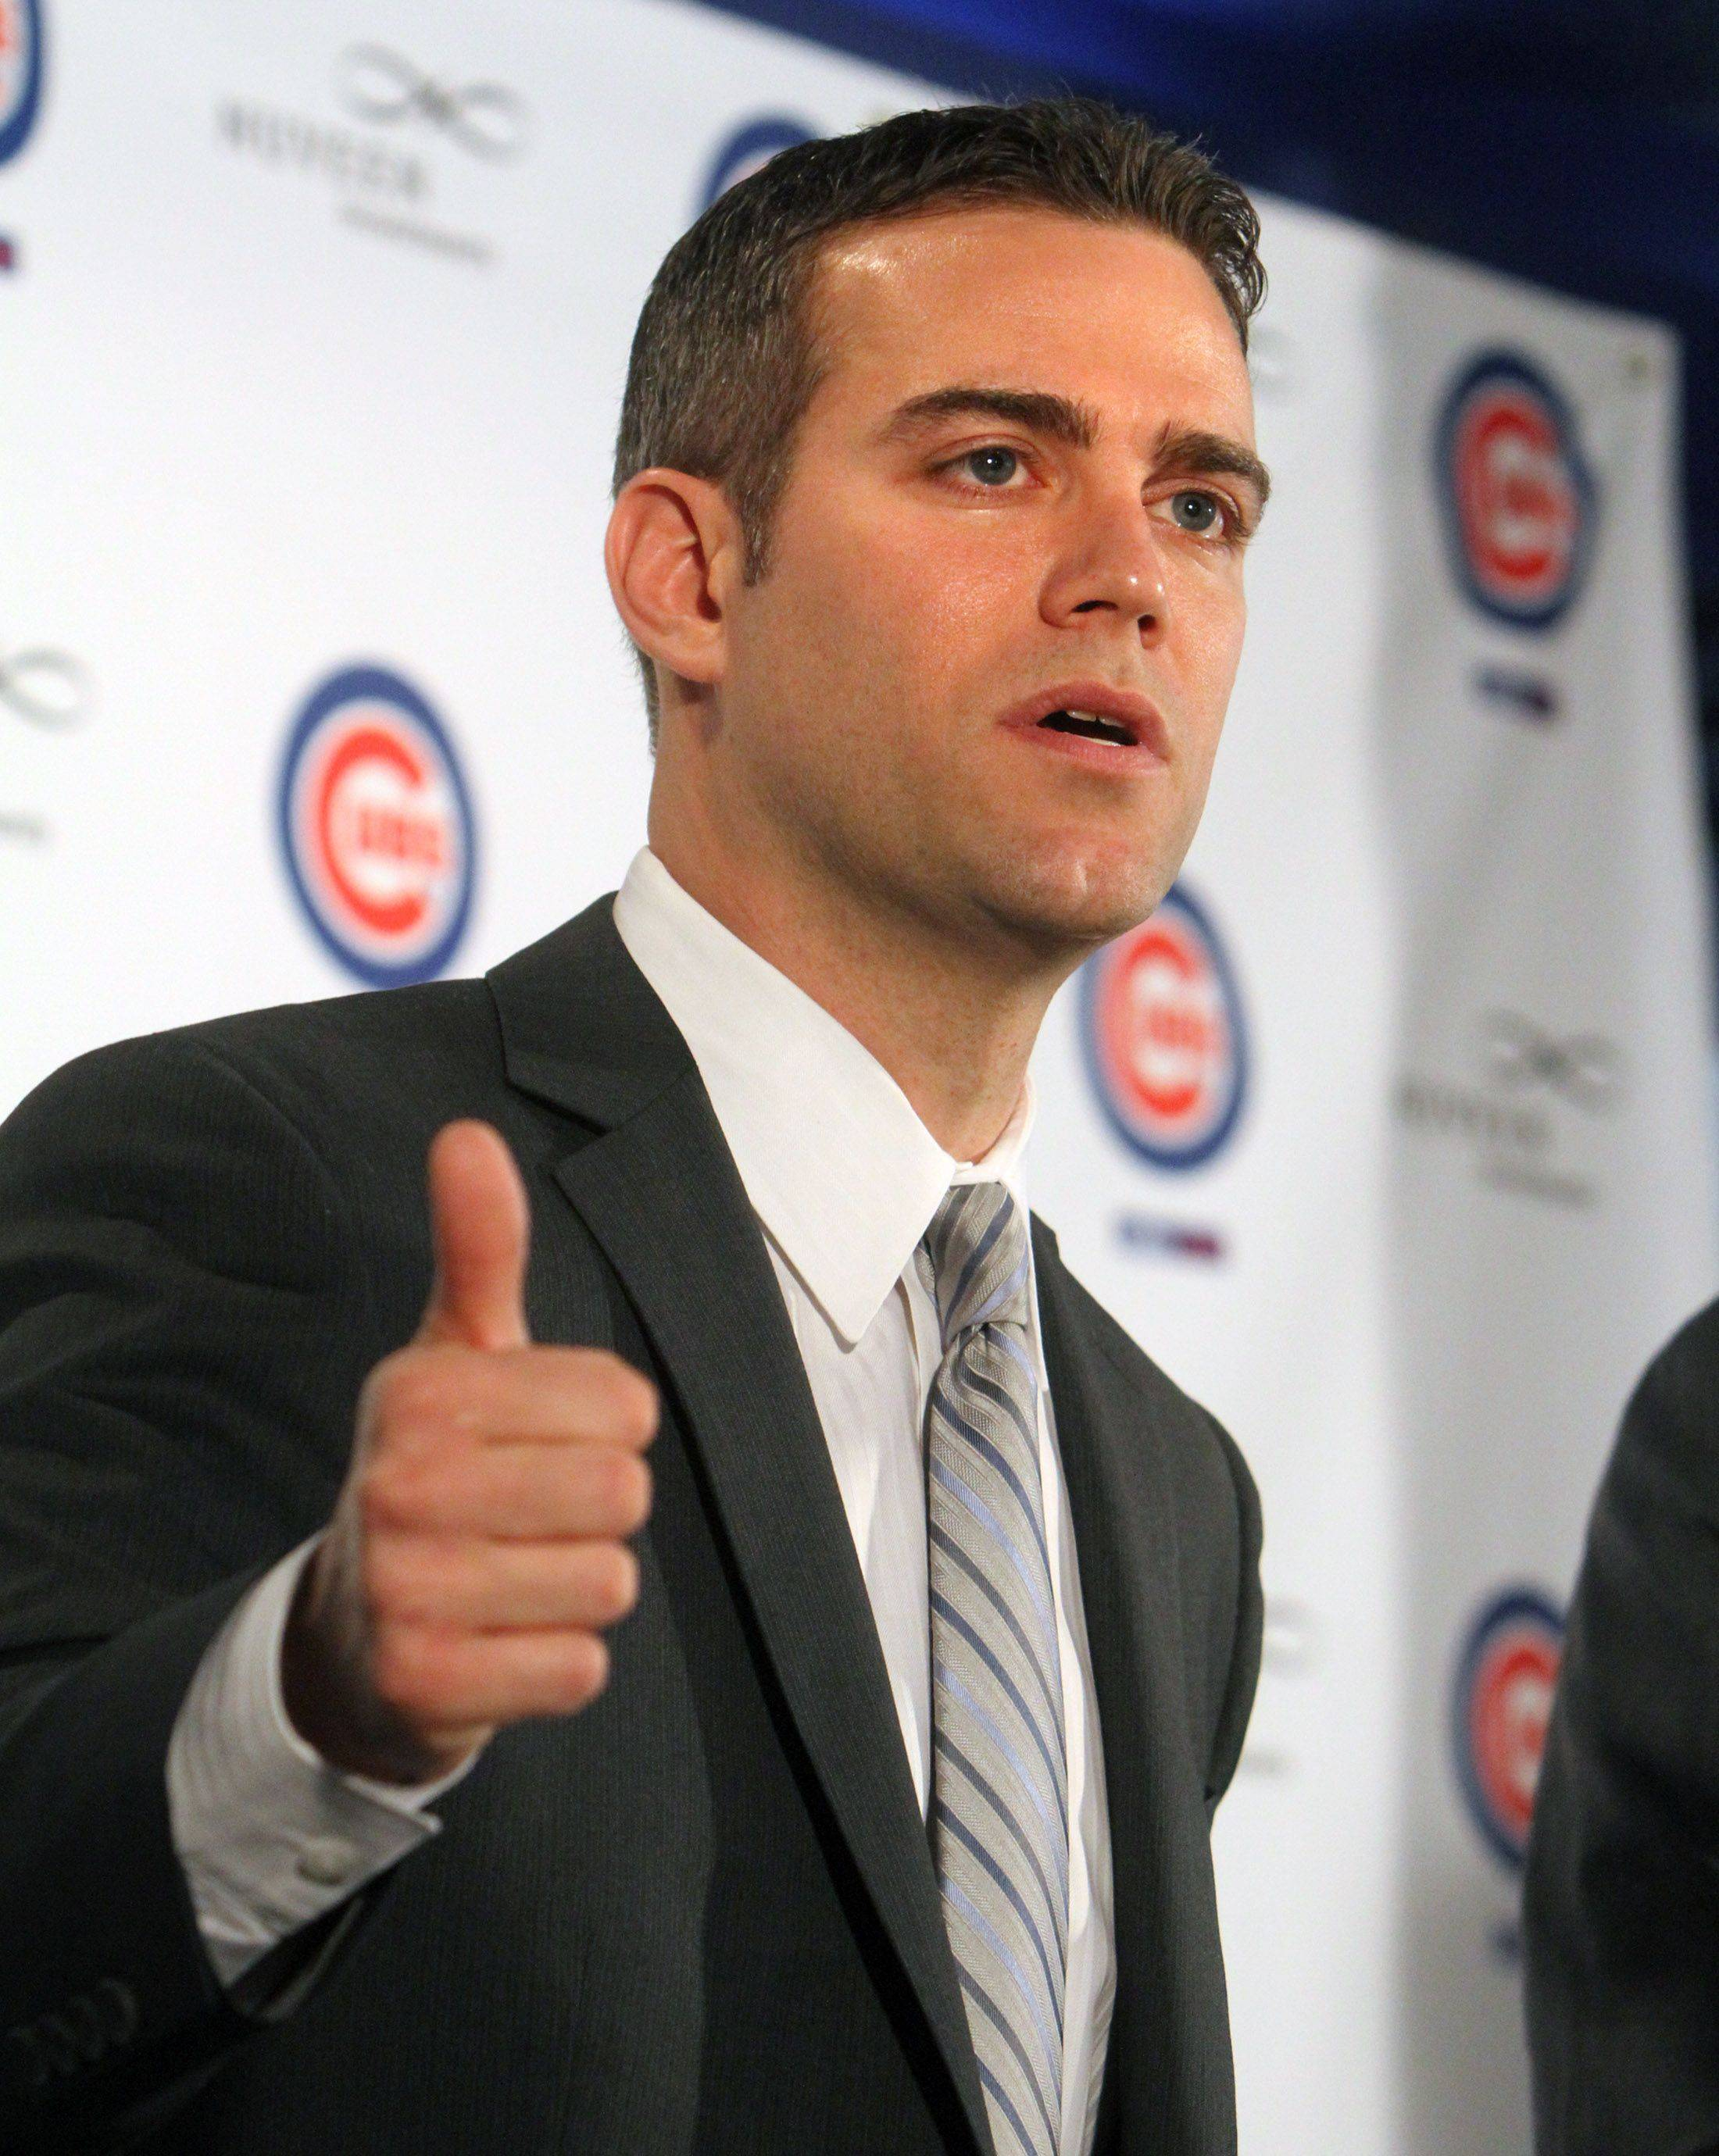 Theo Epstein, Chicago Cubs president of baseball operations, speaks during a press conference at Wrigley Field in Chicago on Tuesday.